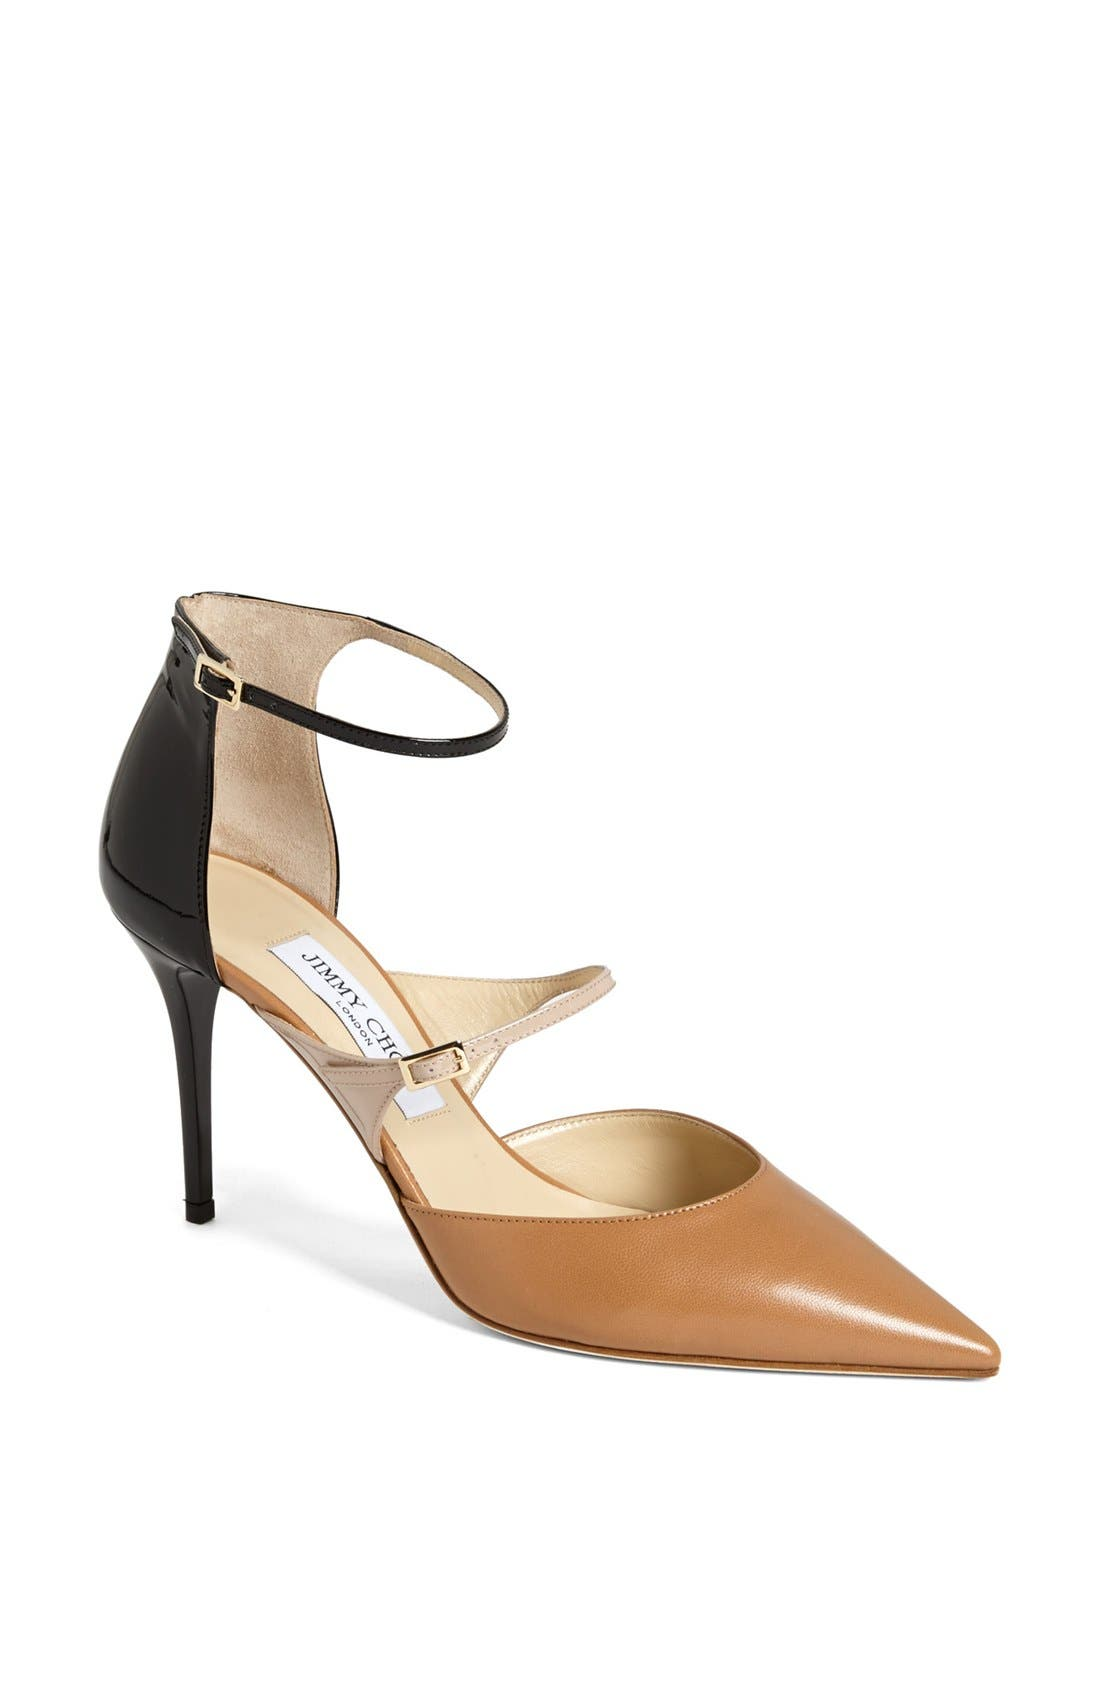 Main Image - Jimmy Choo 'Twist' Ankle Strap Pump